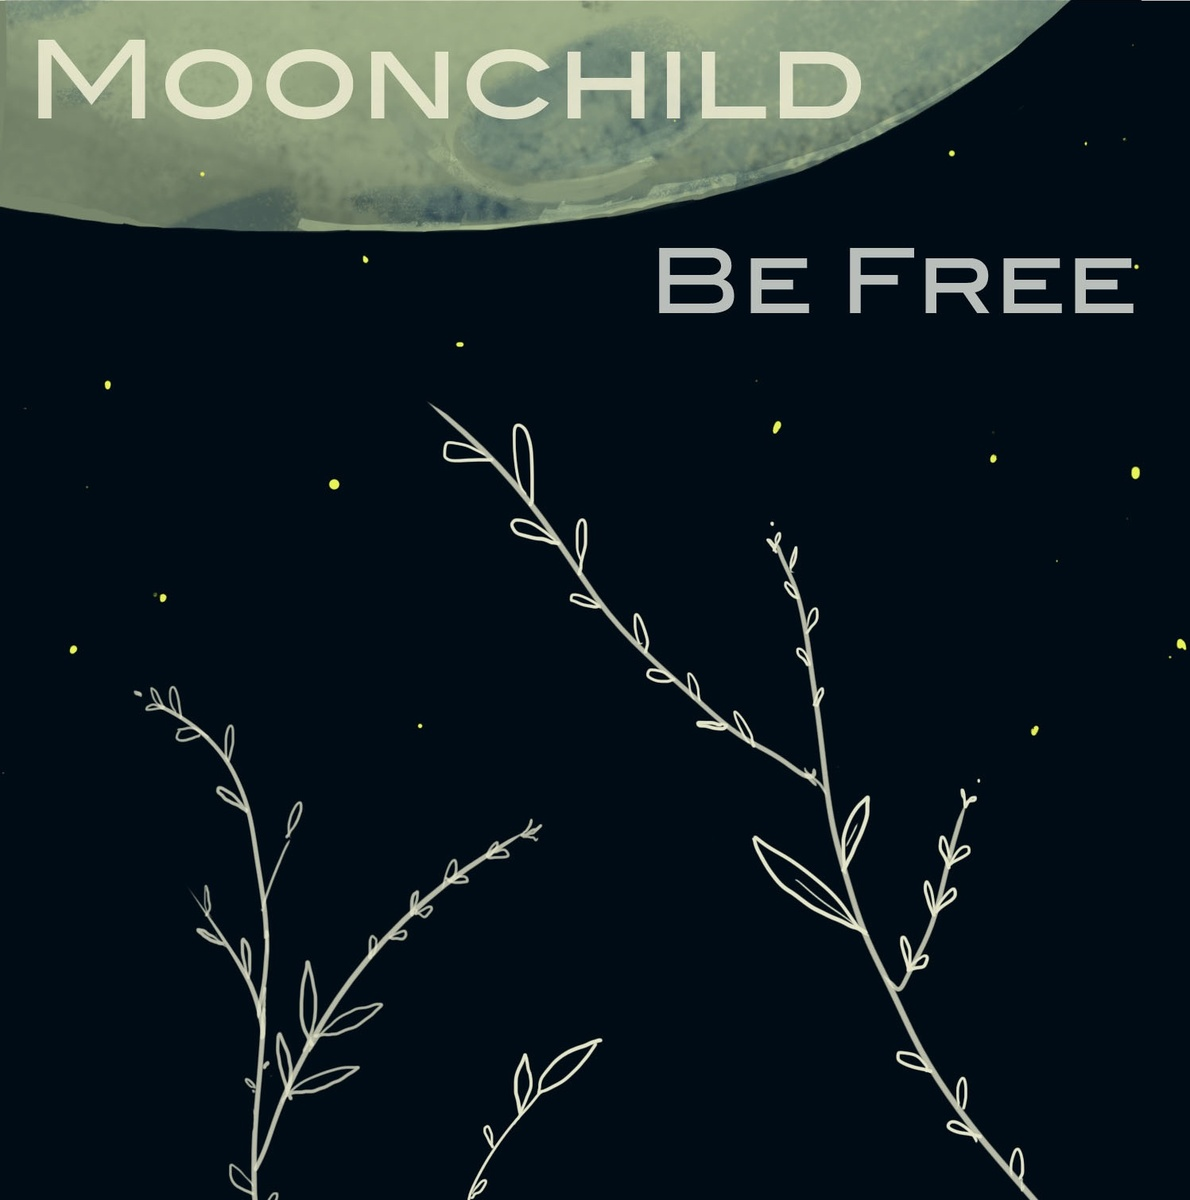 Moonchild – Be Free (DJ Jazzy Jeff and James Poyser Remix)